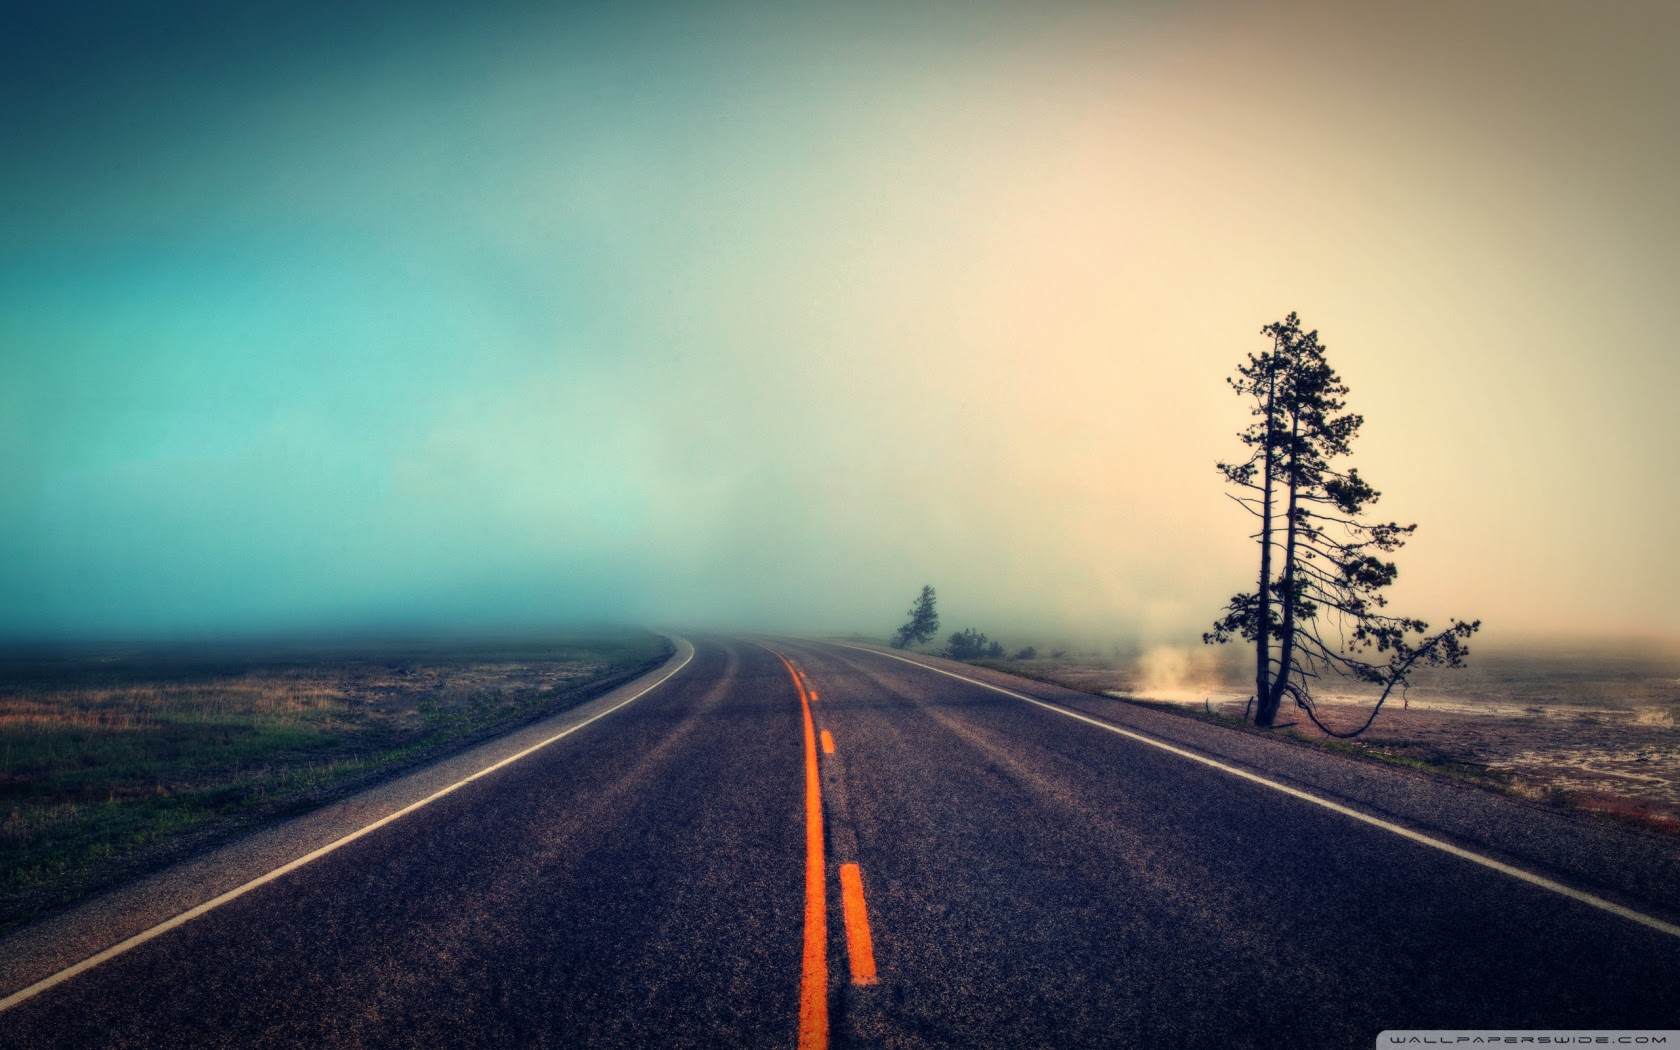 Road To Nowhere Ultra Hd Desktop Background Wallpaper For 4k Uhd Images, Photos, Reviews